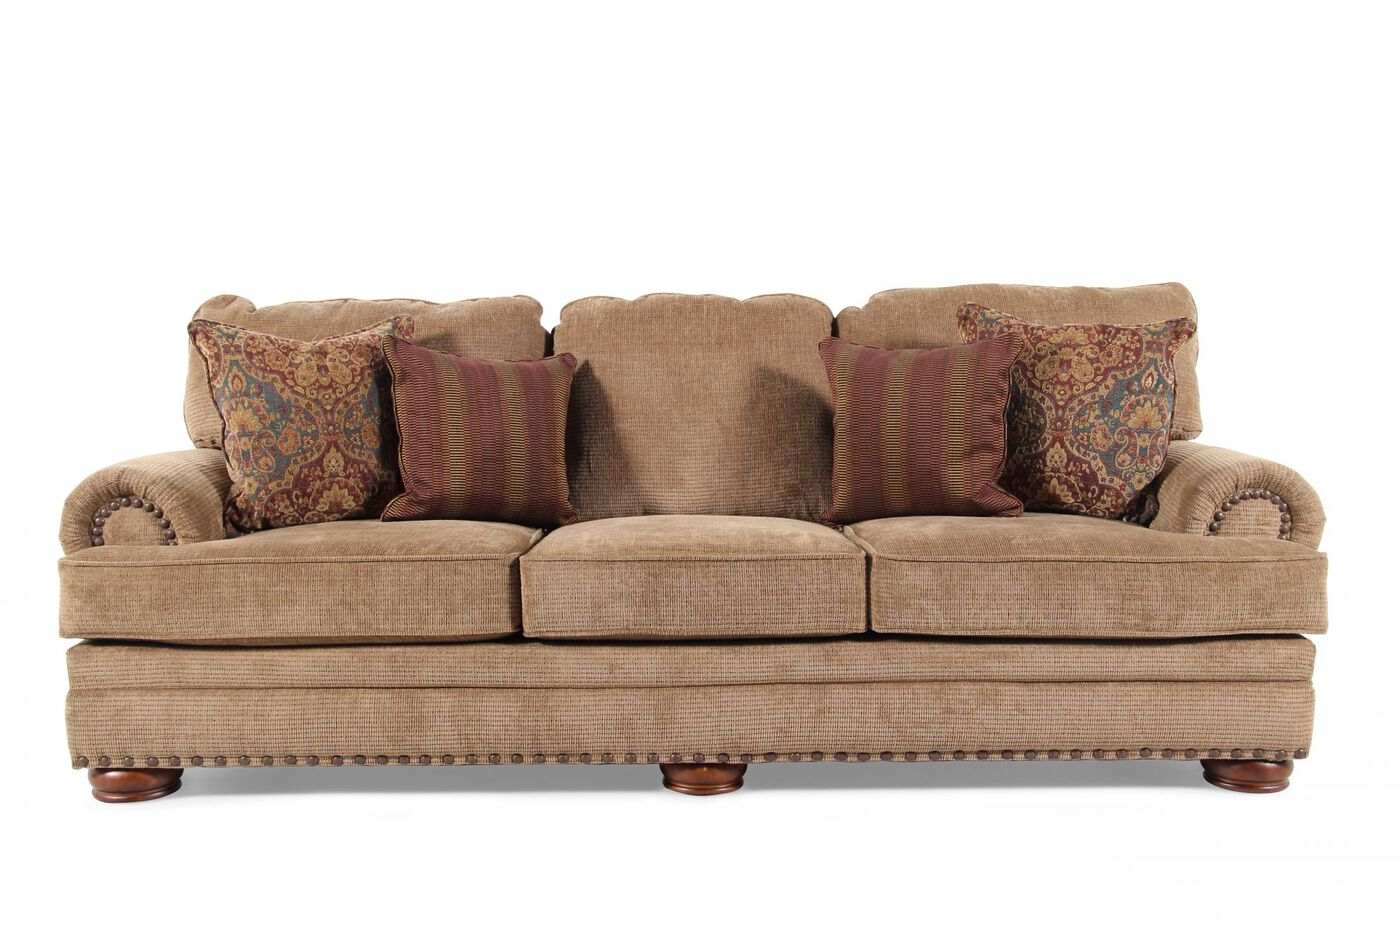 nailhead accented 101 sofa in desert brown mathis brothers furniture. Black Bedroom Furniture Sets. Home Design Ideas